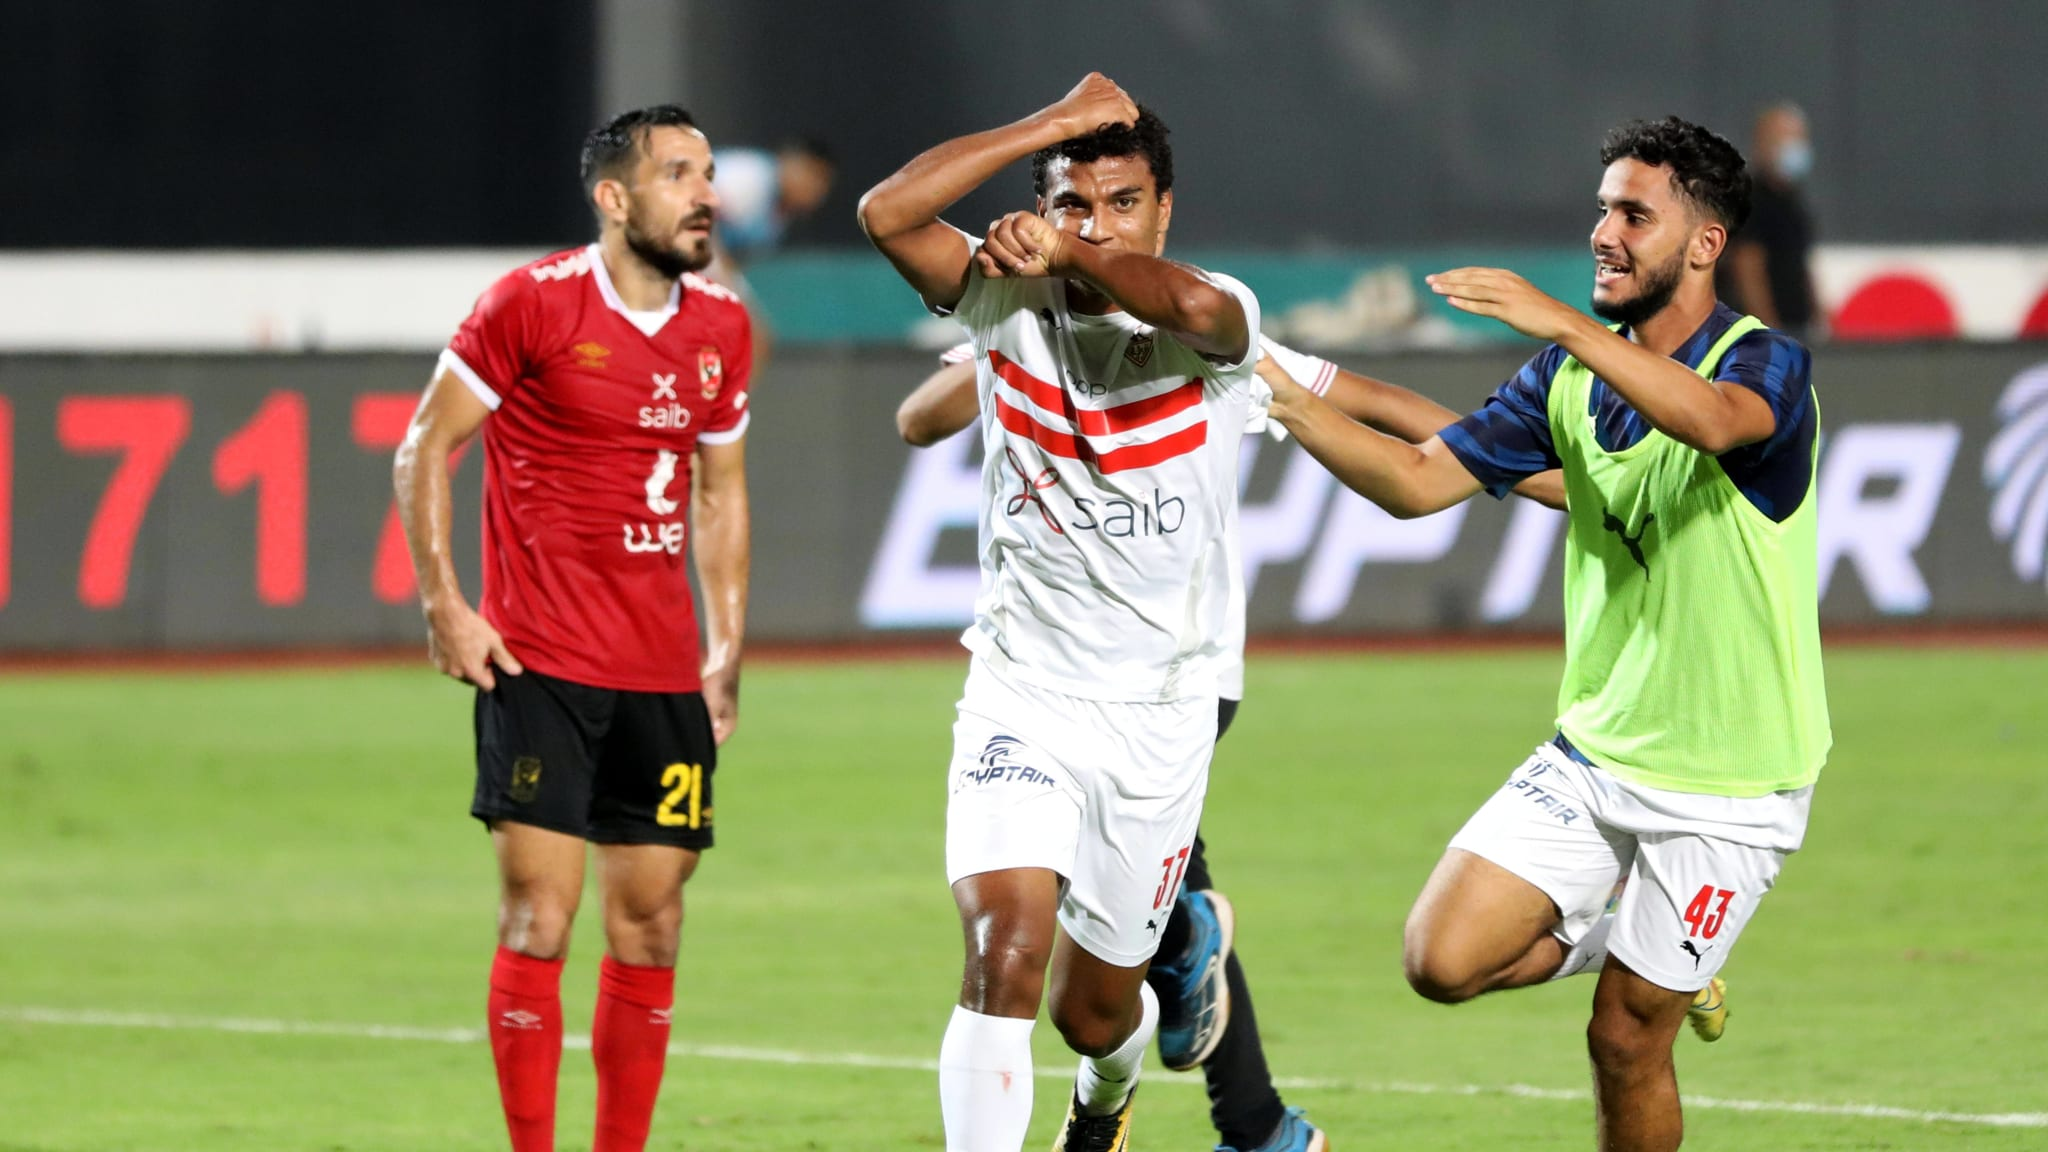 Osama Faisal (C) of Zamalek celebrates during an Egyptian Premier League football match between Zamalek and Al-Ahly in Cairo, Egypt.